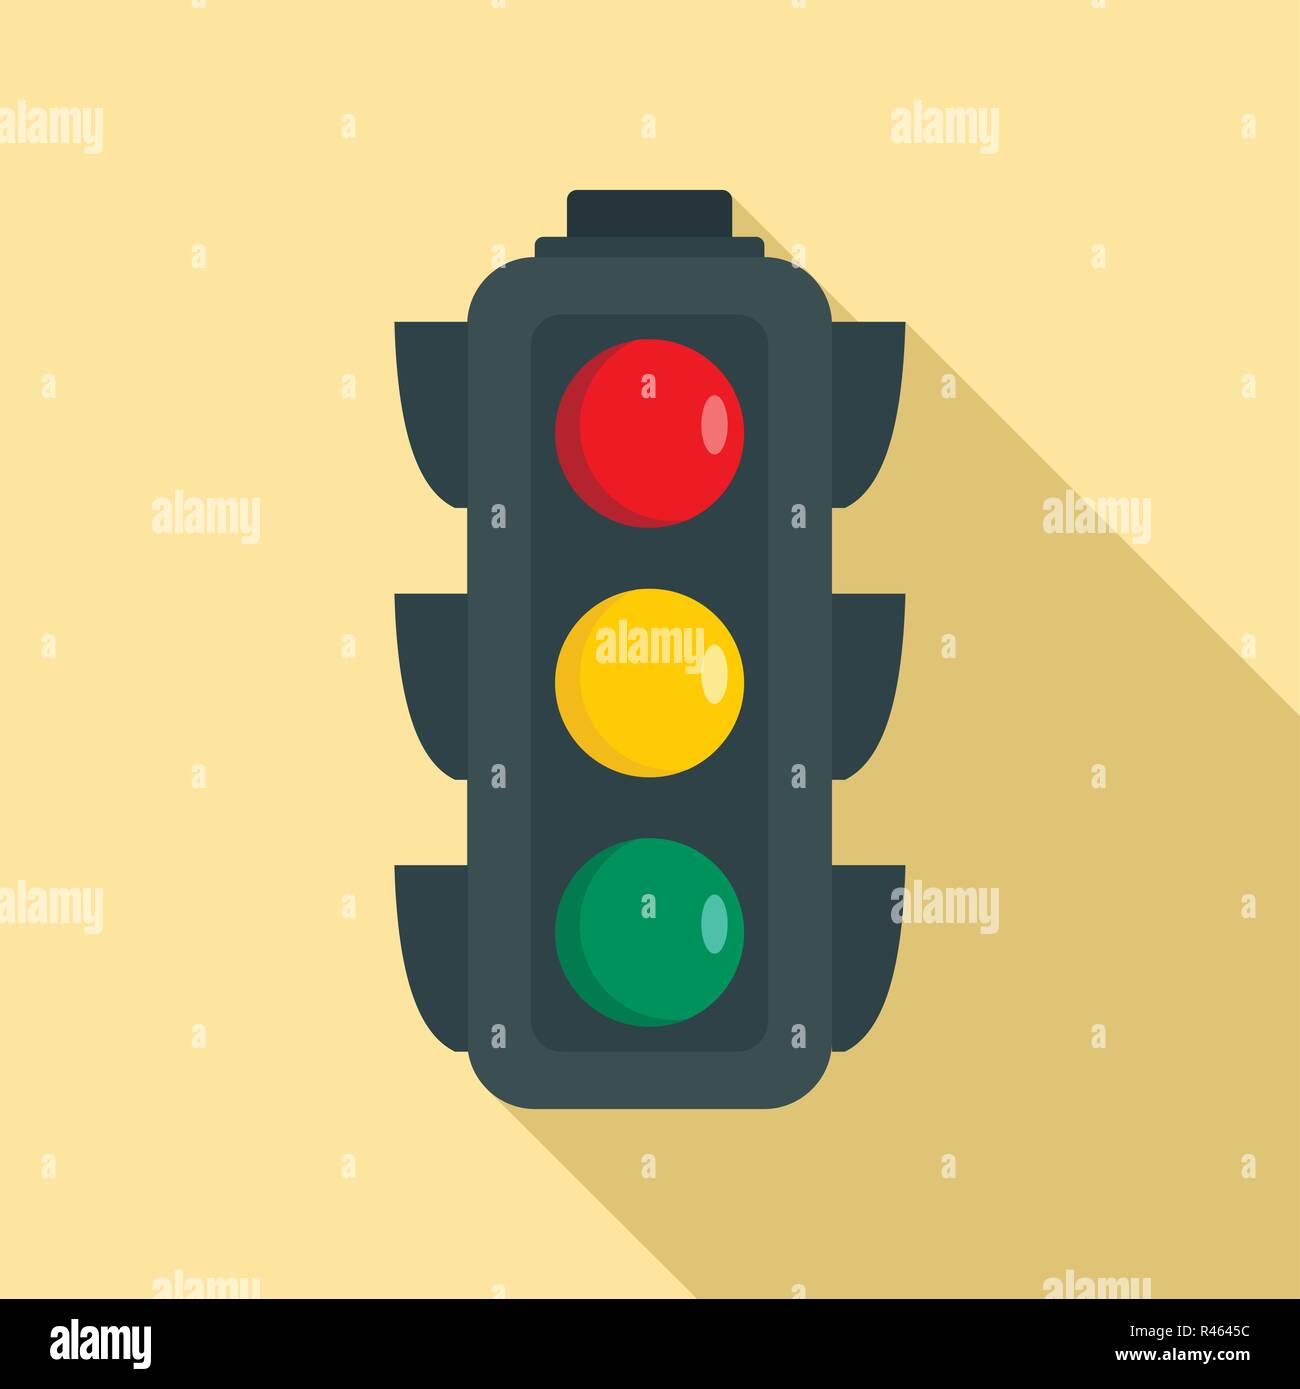 Fußgängerampel Clipart Crossroad With Traffic Lights Stock Vector Images Alamy